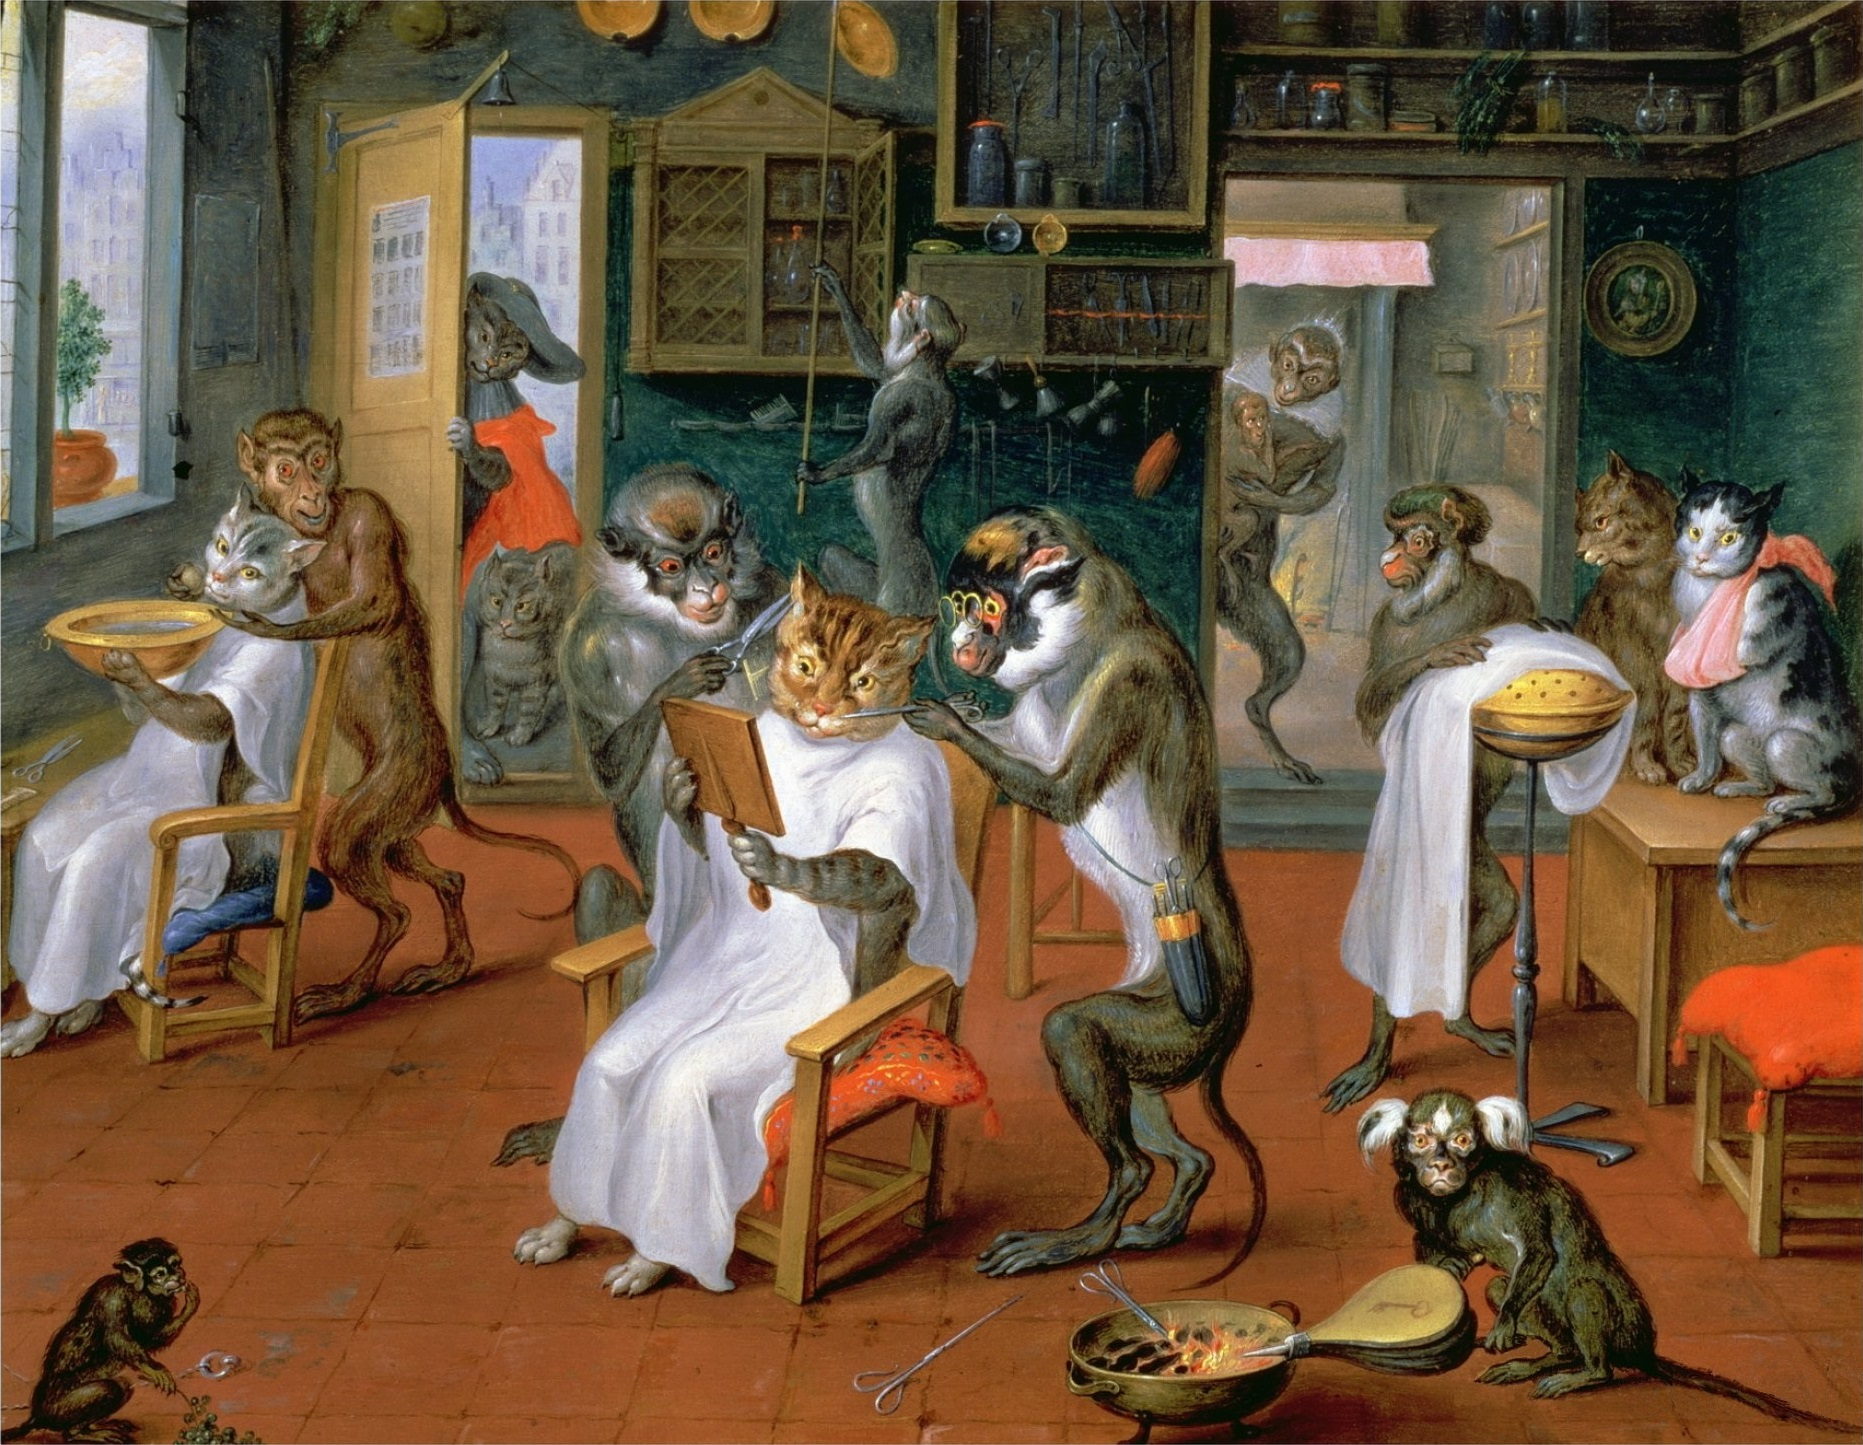 Painting of Barbershop with Monkeys and Cats by Abraham Teniers.